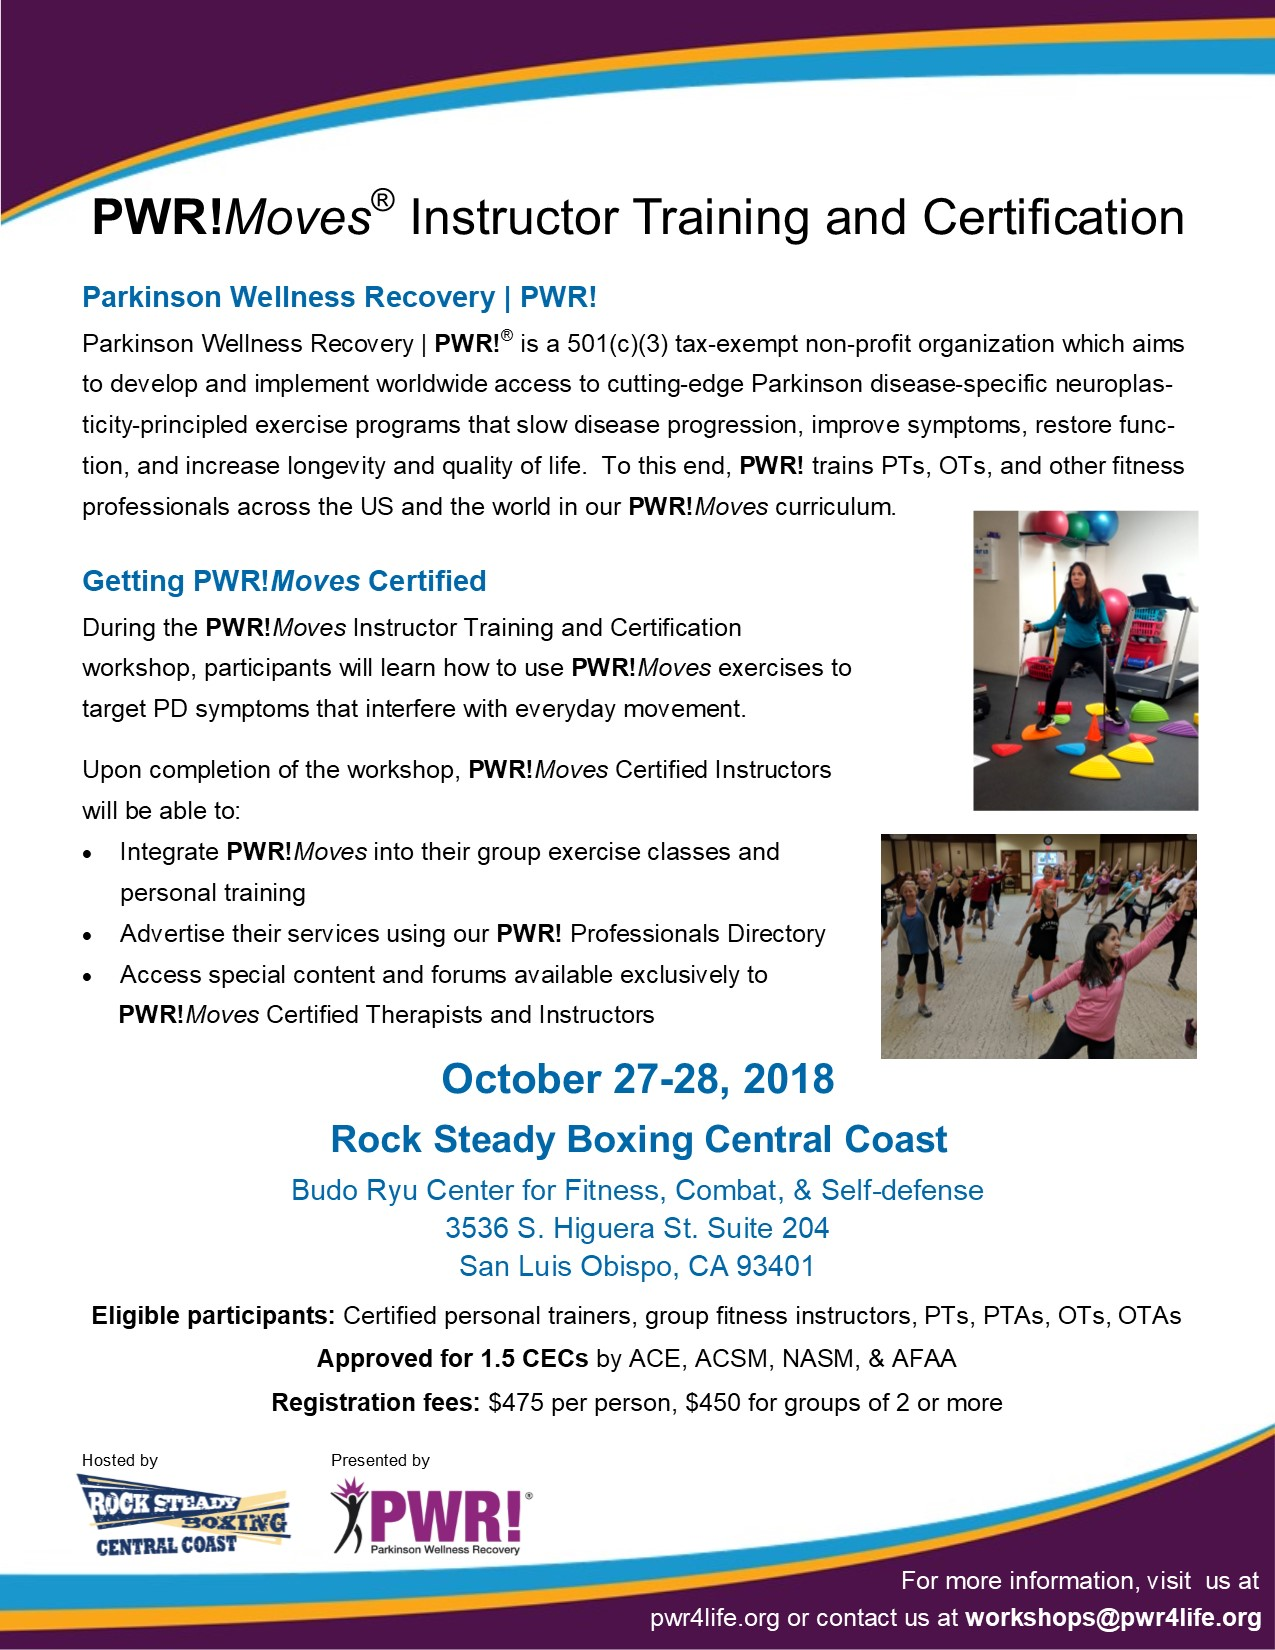 Upcoming Pwr Instructor Workshops Parkinson Wellness Recovery Pwr